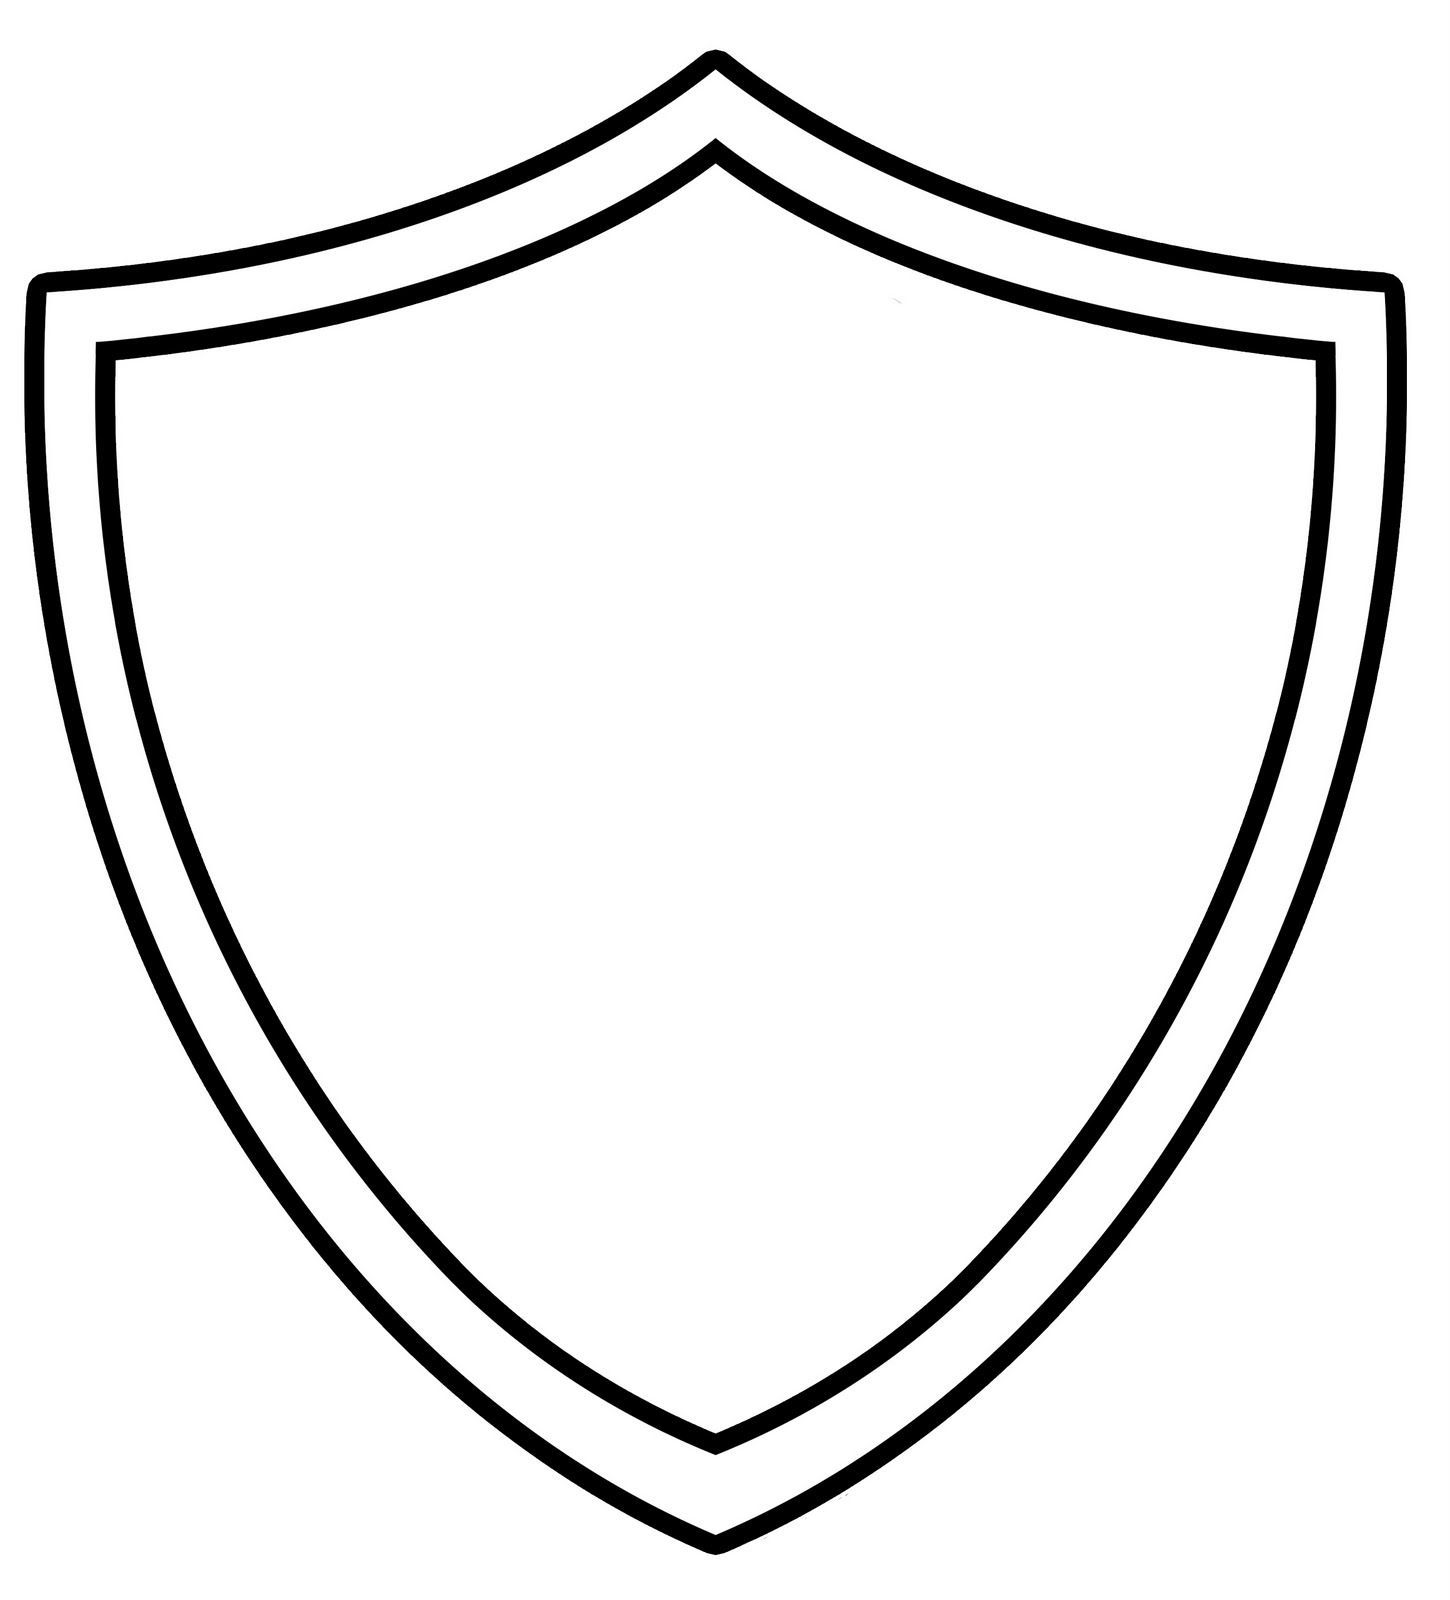 1450x1600 Fascinating Ctr Shield Coloring Page Quad Ocean Group Classroom